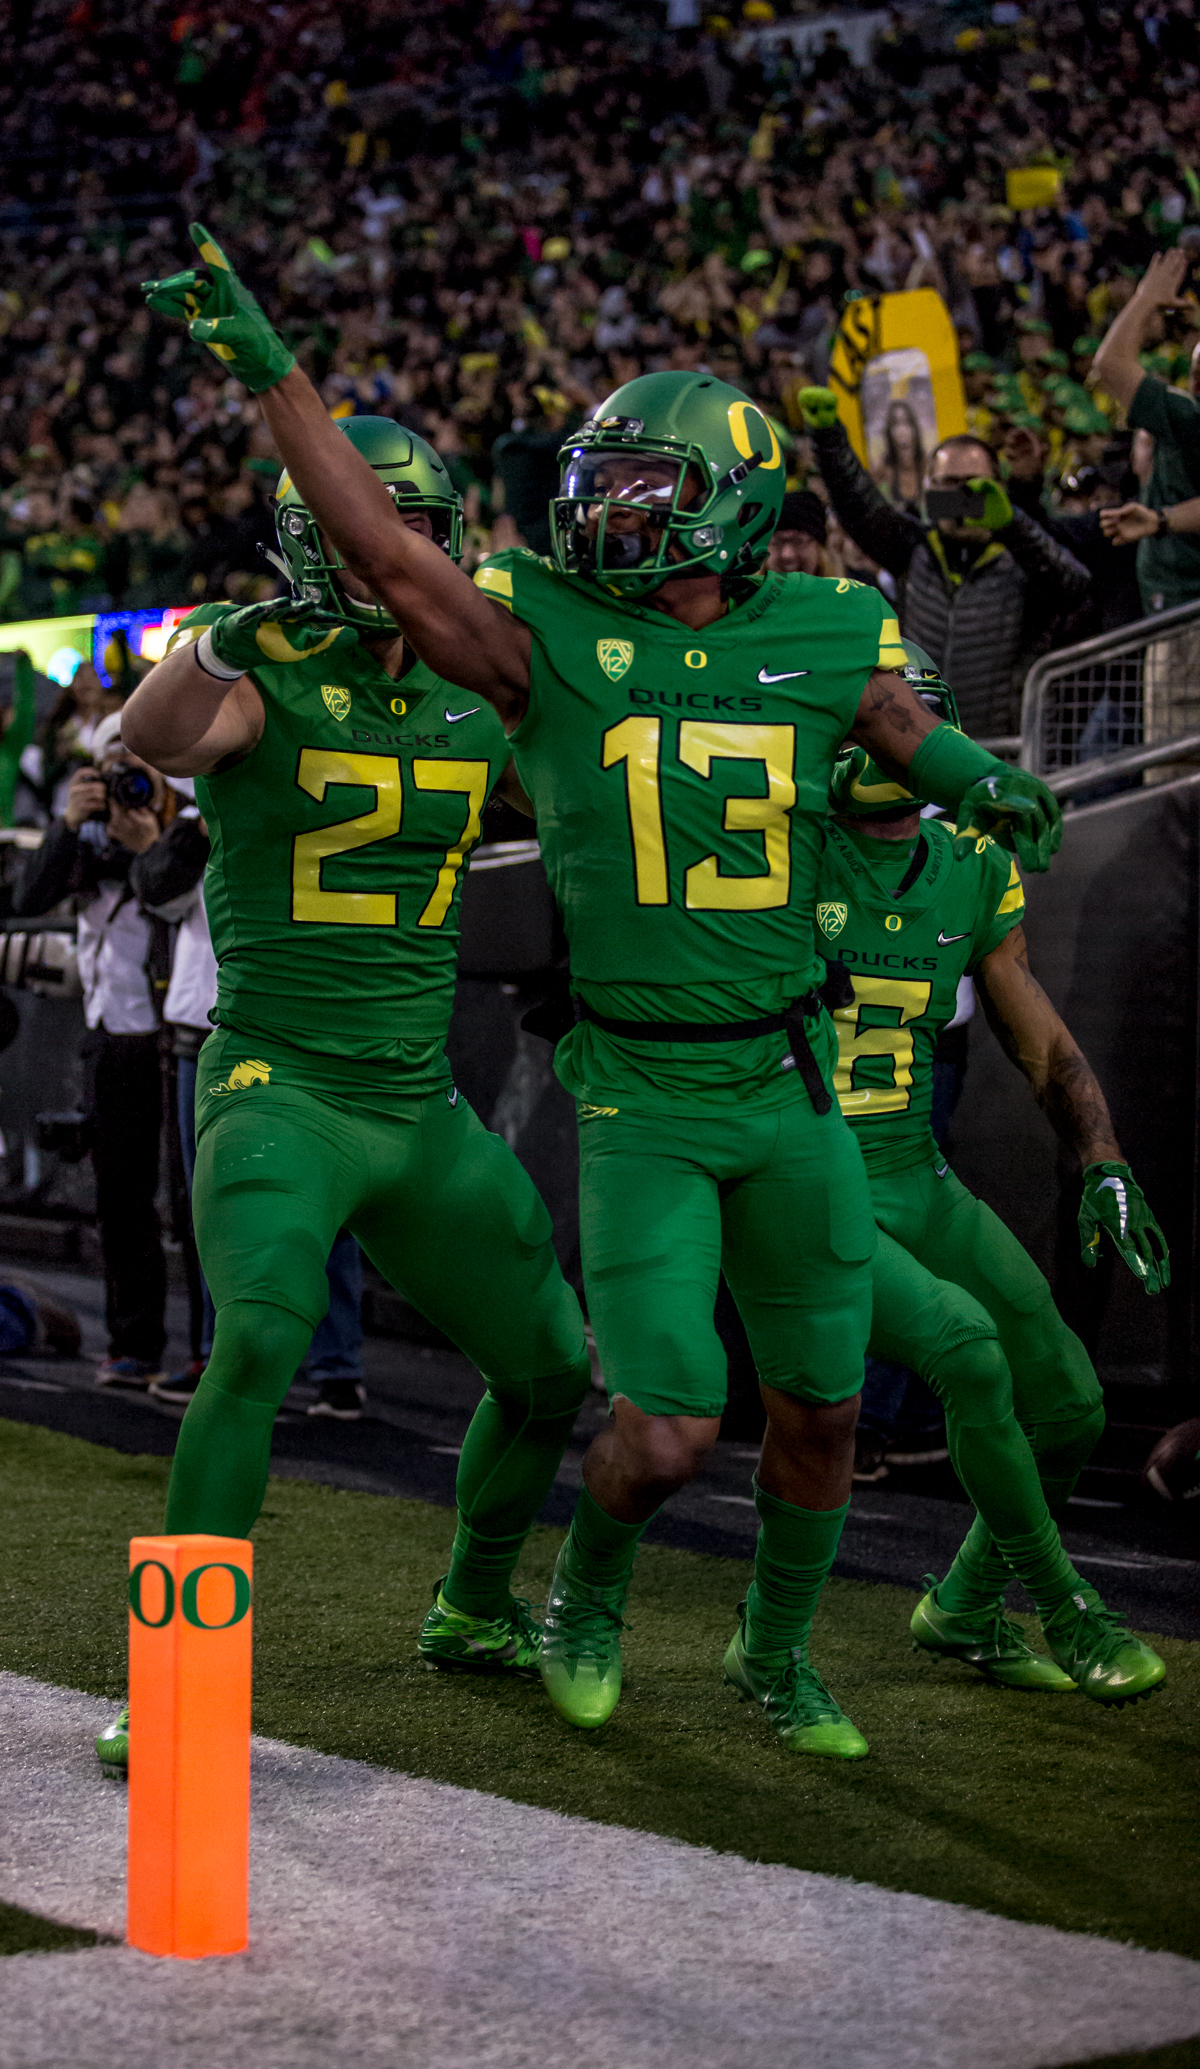 Oregon wide receiver Dillon Mitchell (#13) cheers with fellow Ducks following his touchdown catch during the first half. The Oregon Ducks lead the Oregon State Beavers 52 to 7 at the end of the first half of the 121st Civil War game on Saturday, November 25, 2017 at Autzen Stadium in Eugene, Ore. Photo by Ben Lonergan, Oregon News Lab